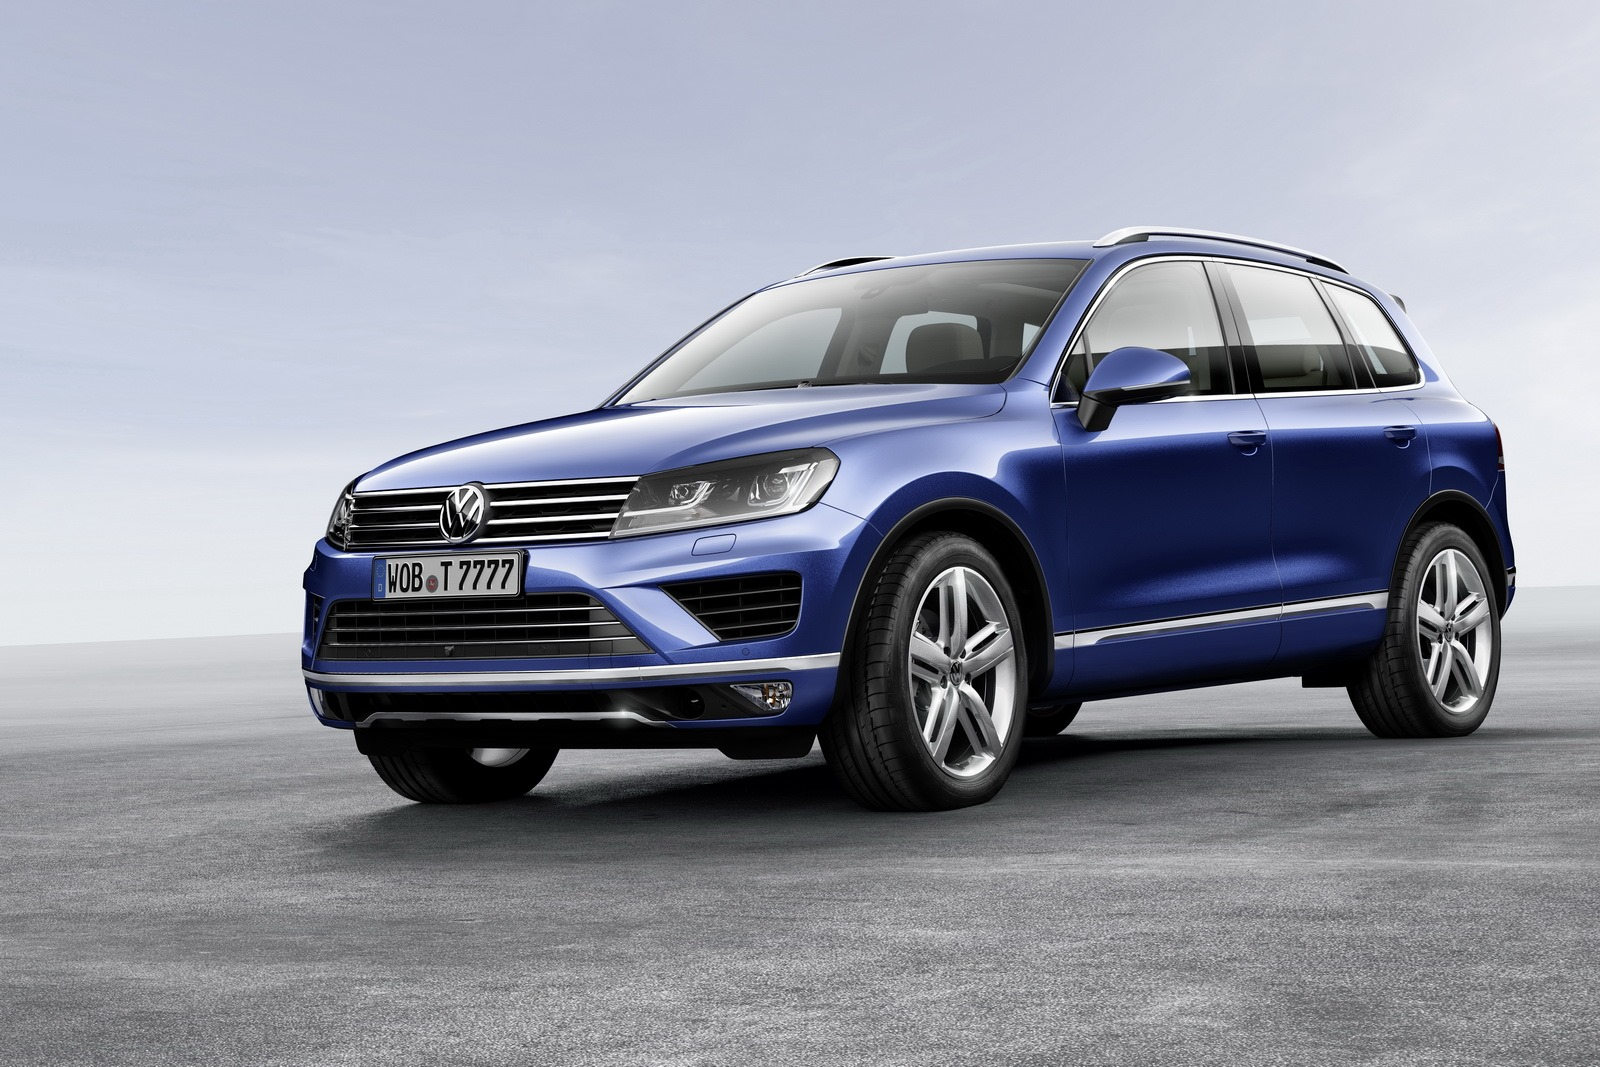 2015 Volkswagen Touareg Facelift Brings New Features